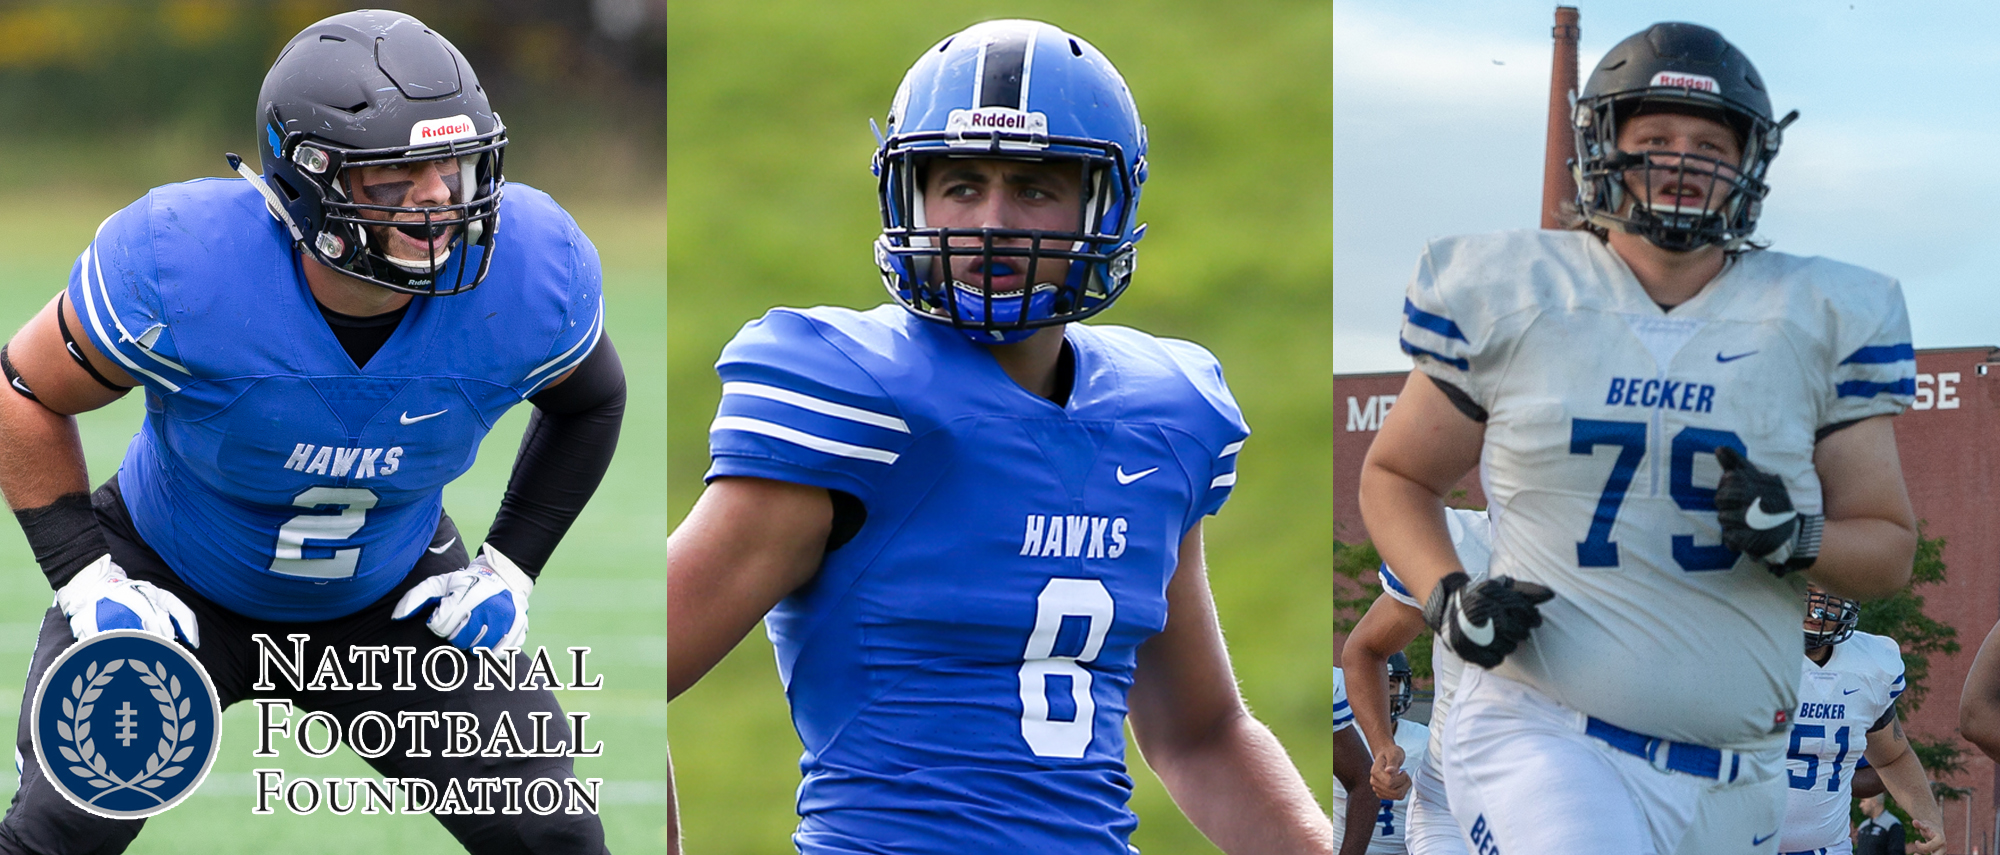 NFF Hampshire Honor Society: Bianco, Mole, Rogerson